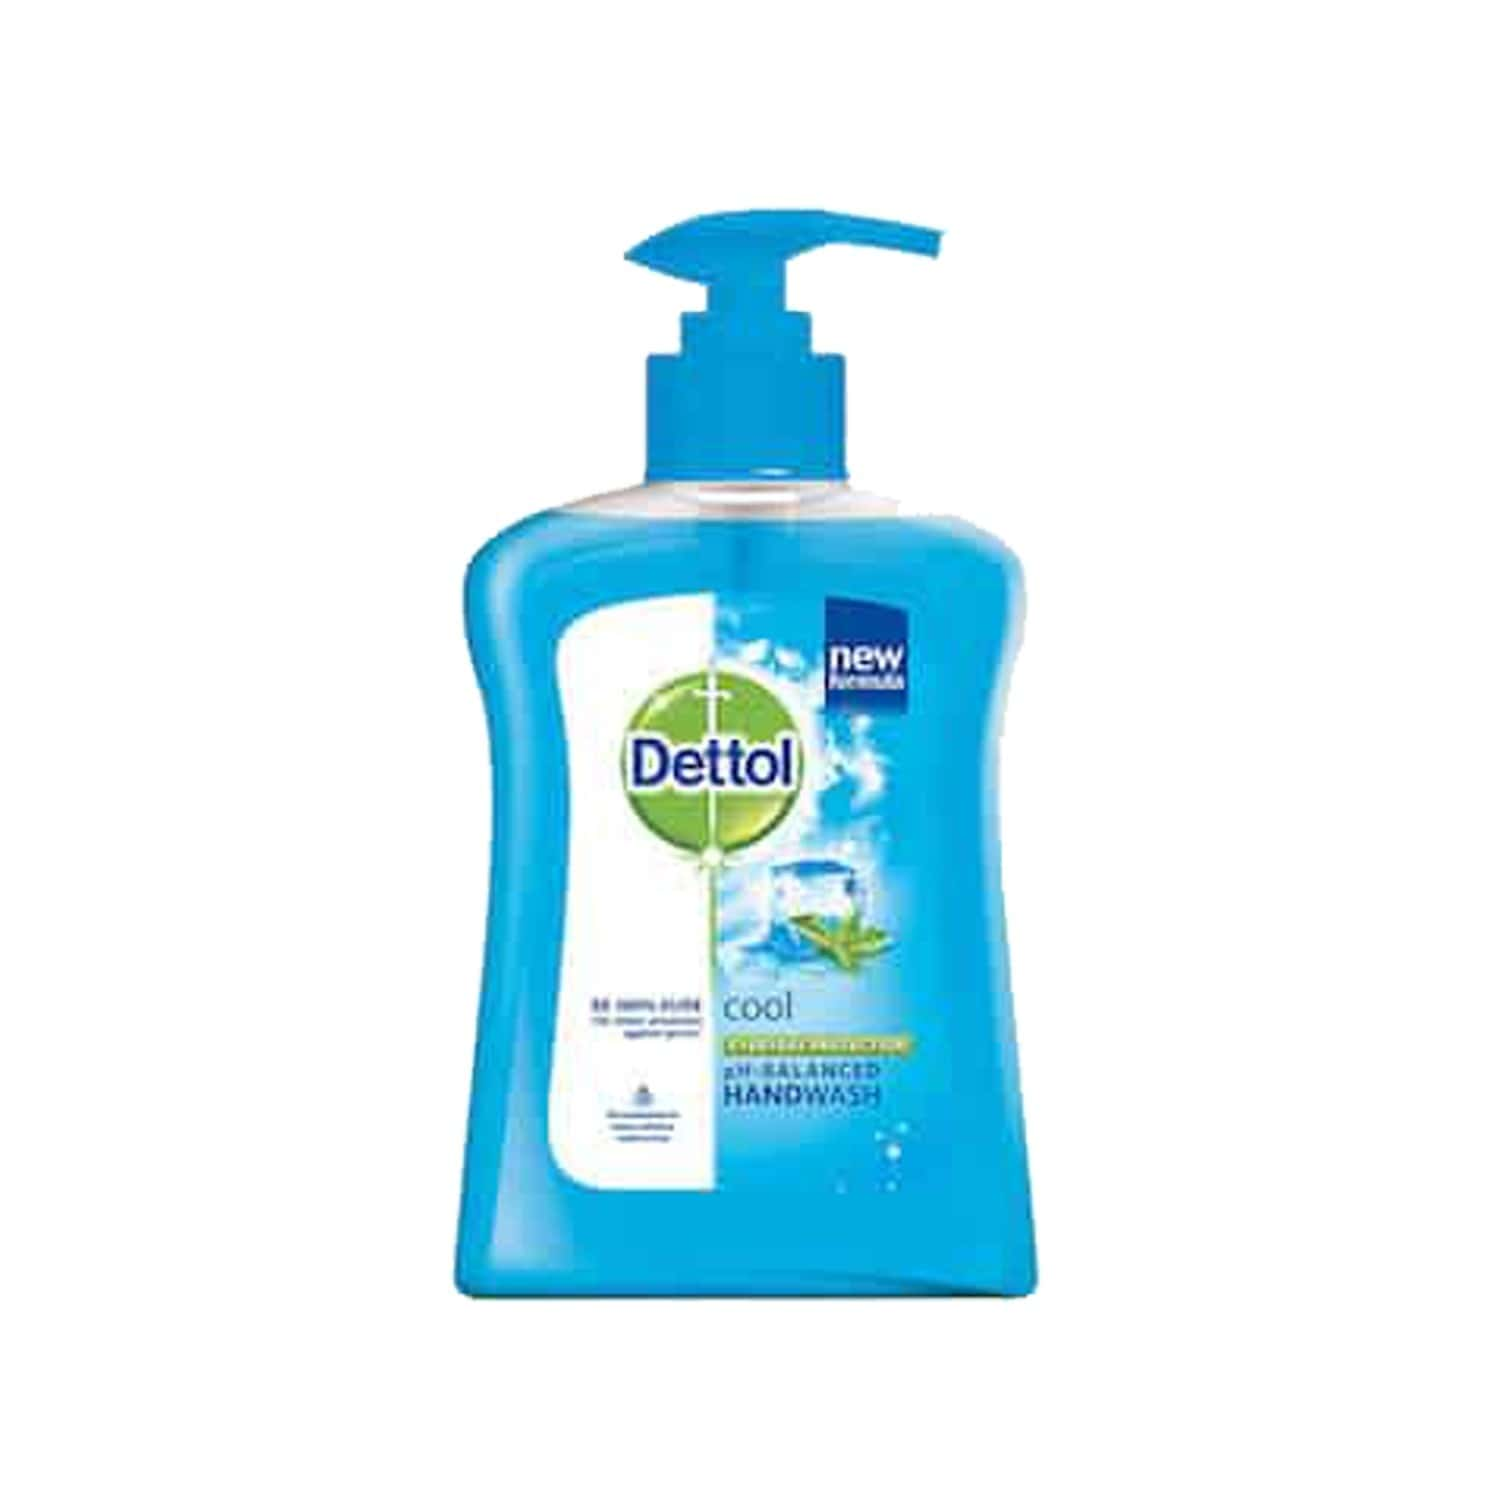 Dettol Germ Protection Liquid Hand Wash Cool 200 Ml, Get Free 185 Ml Refill Pack